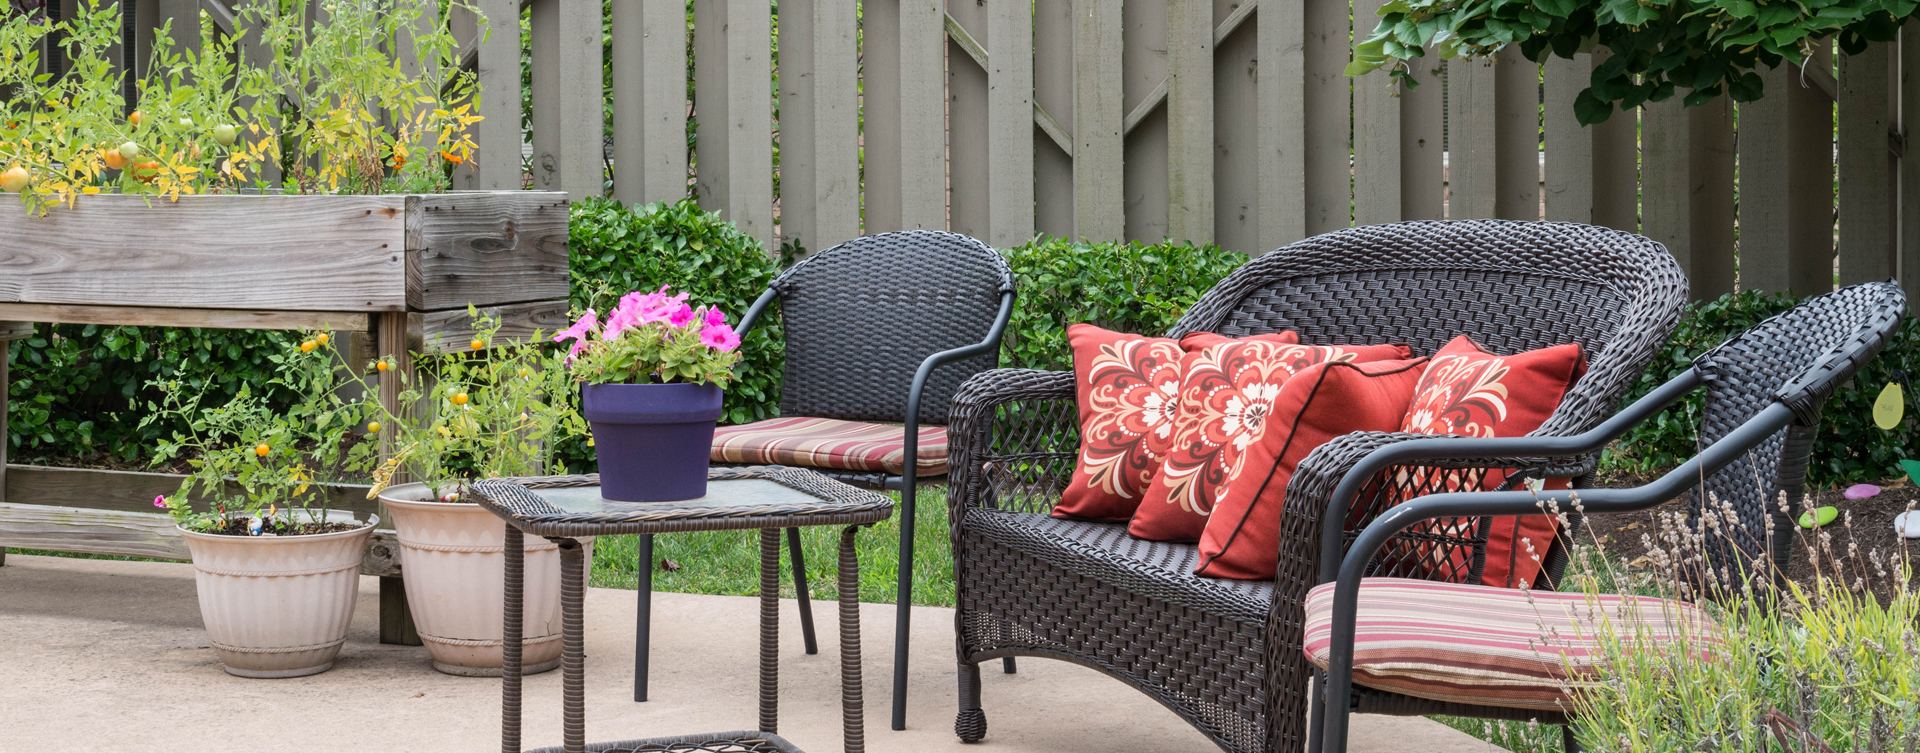 Enjoy bird watching, gardening and barbecuing in our courtyard at Bickford of Middletown